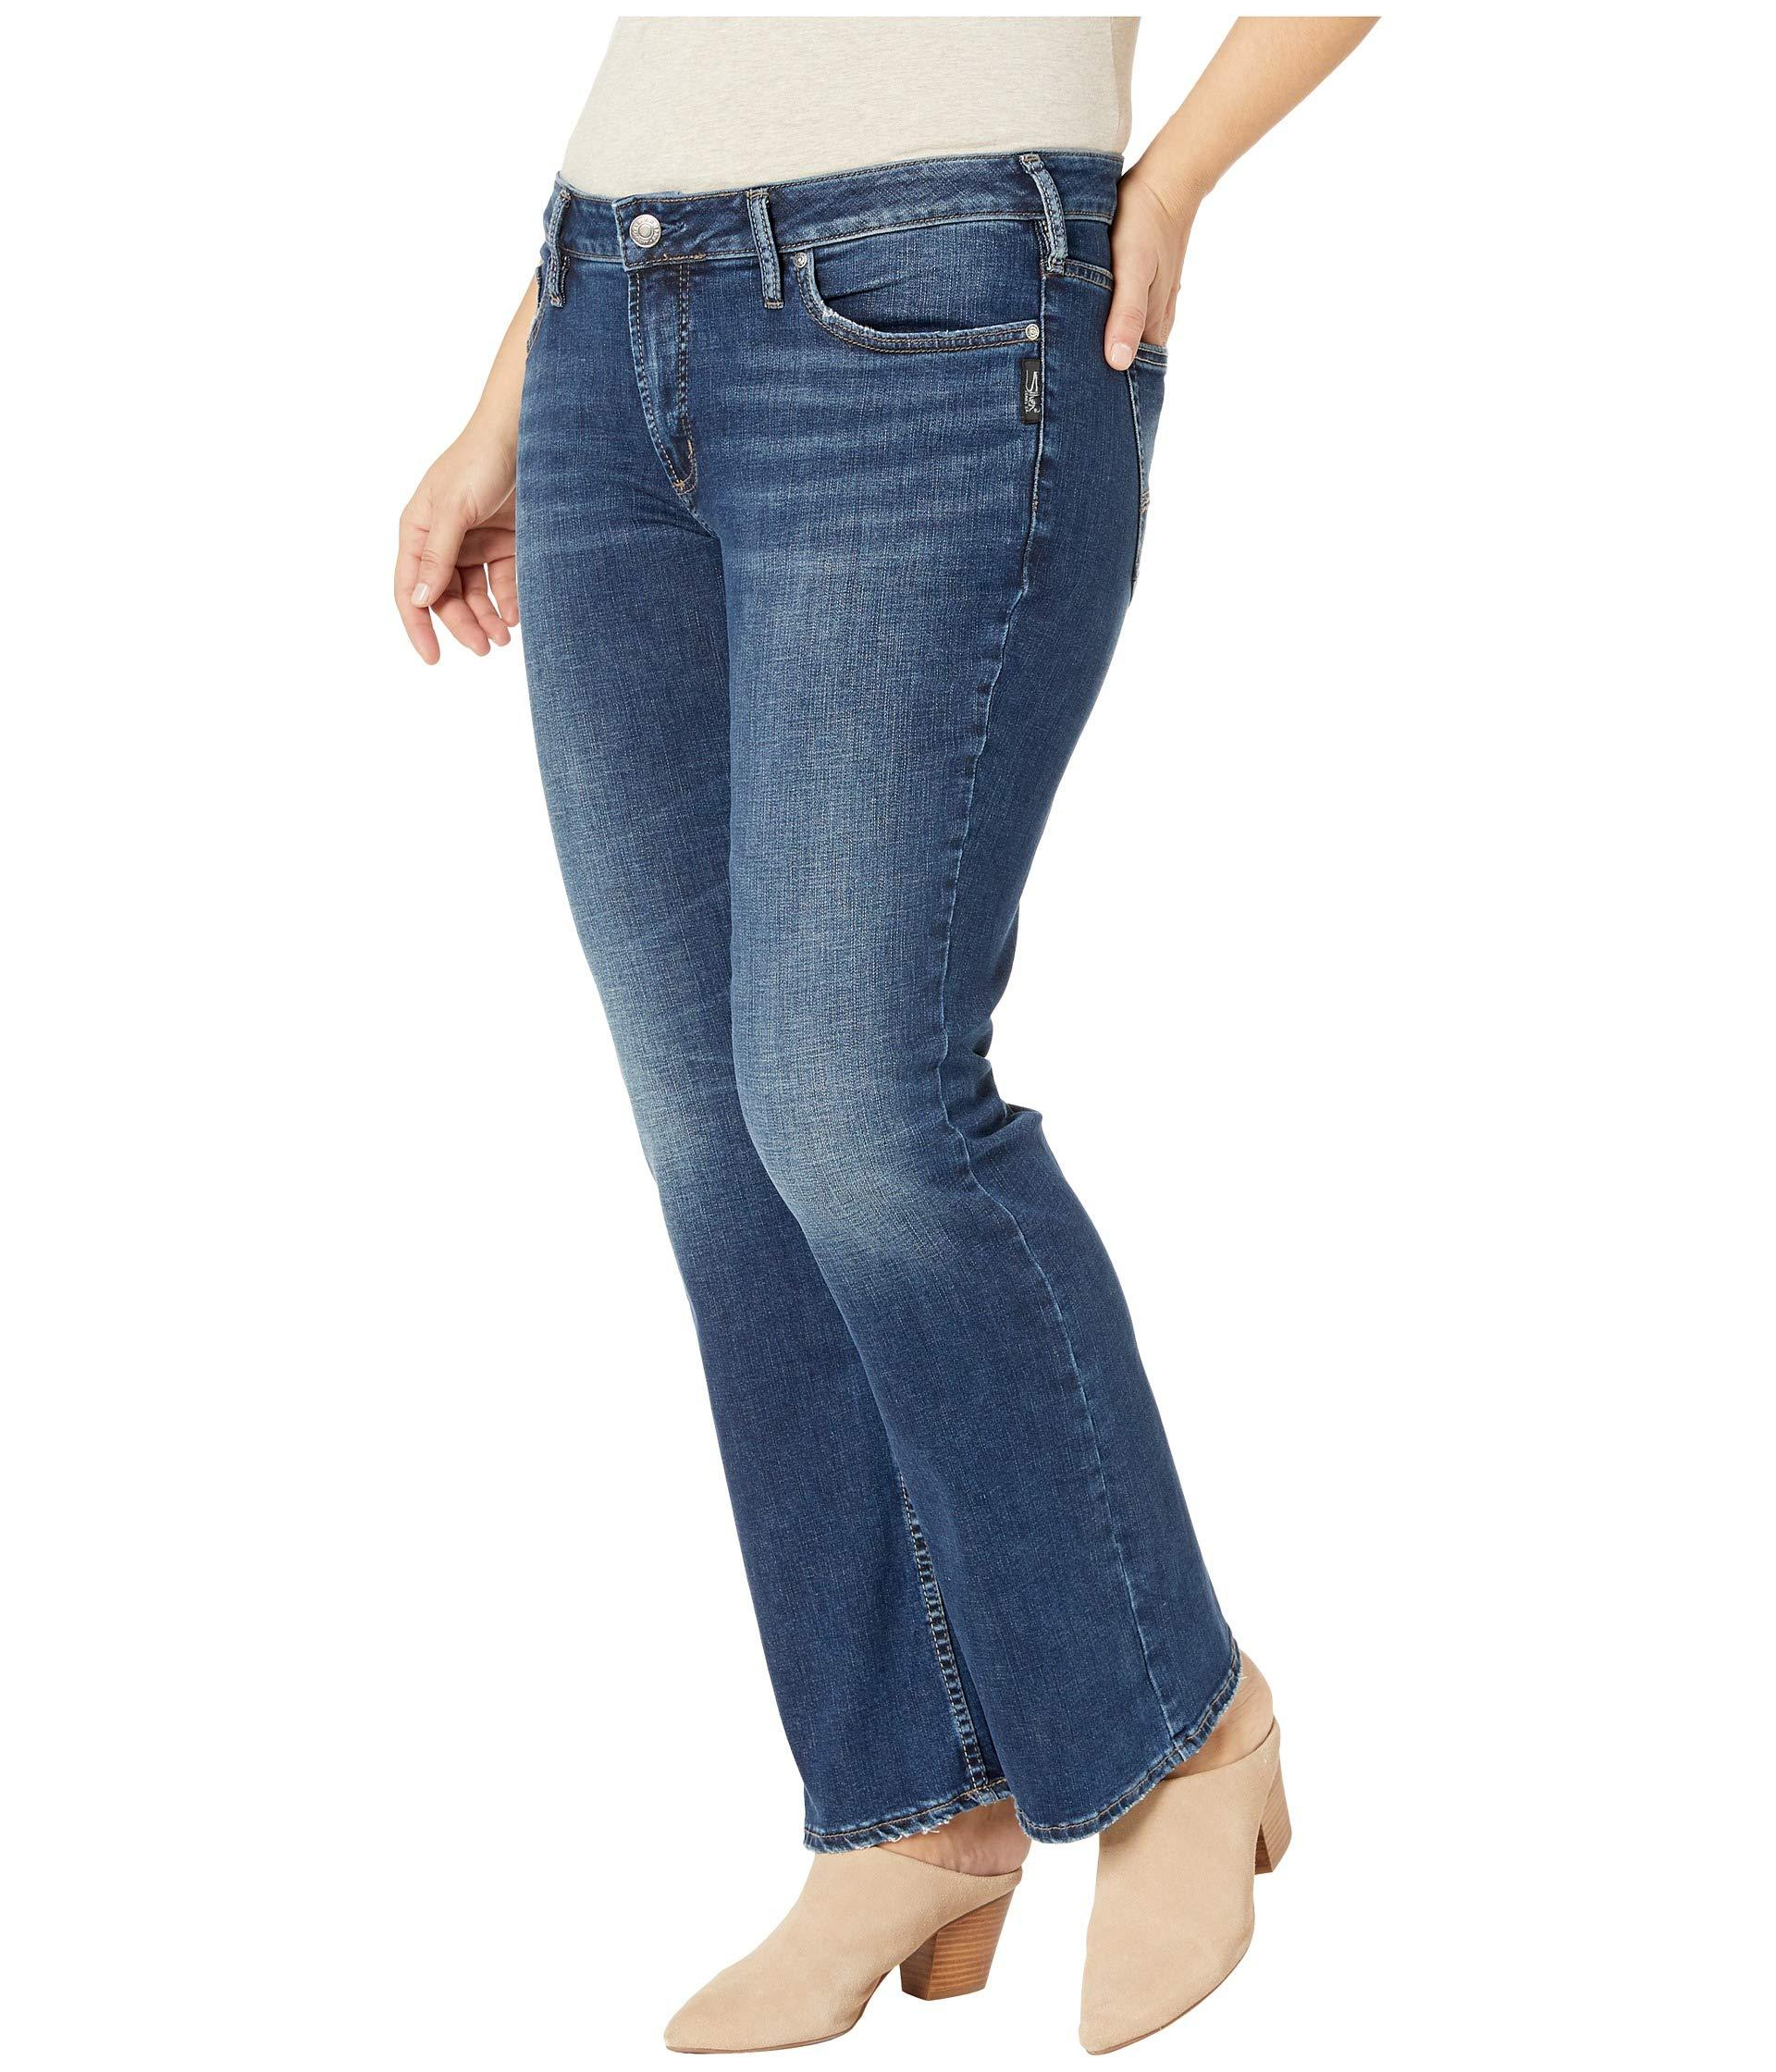 bf1770f3901 Lyst - Silver Jeans Co. Plus Size Suki Mid-rise Curvy Fit Slim Boot Jeans  In Indigo (indigo) Women s Jeans in Blue